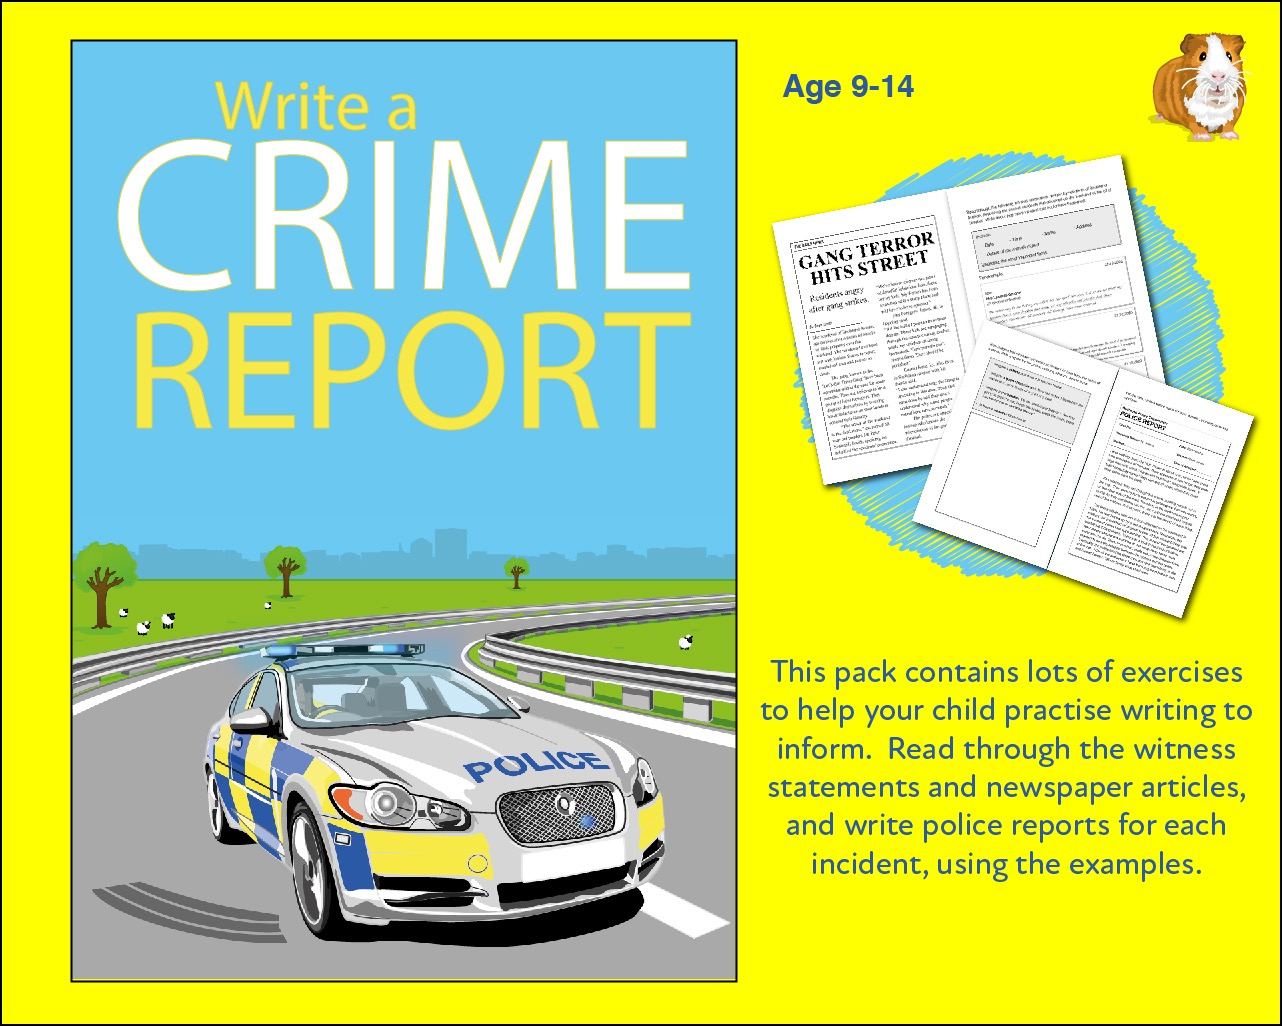 Practise Writing A Crime Report (9-14 years)